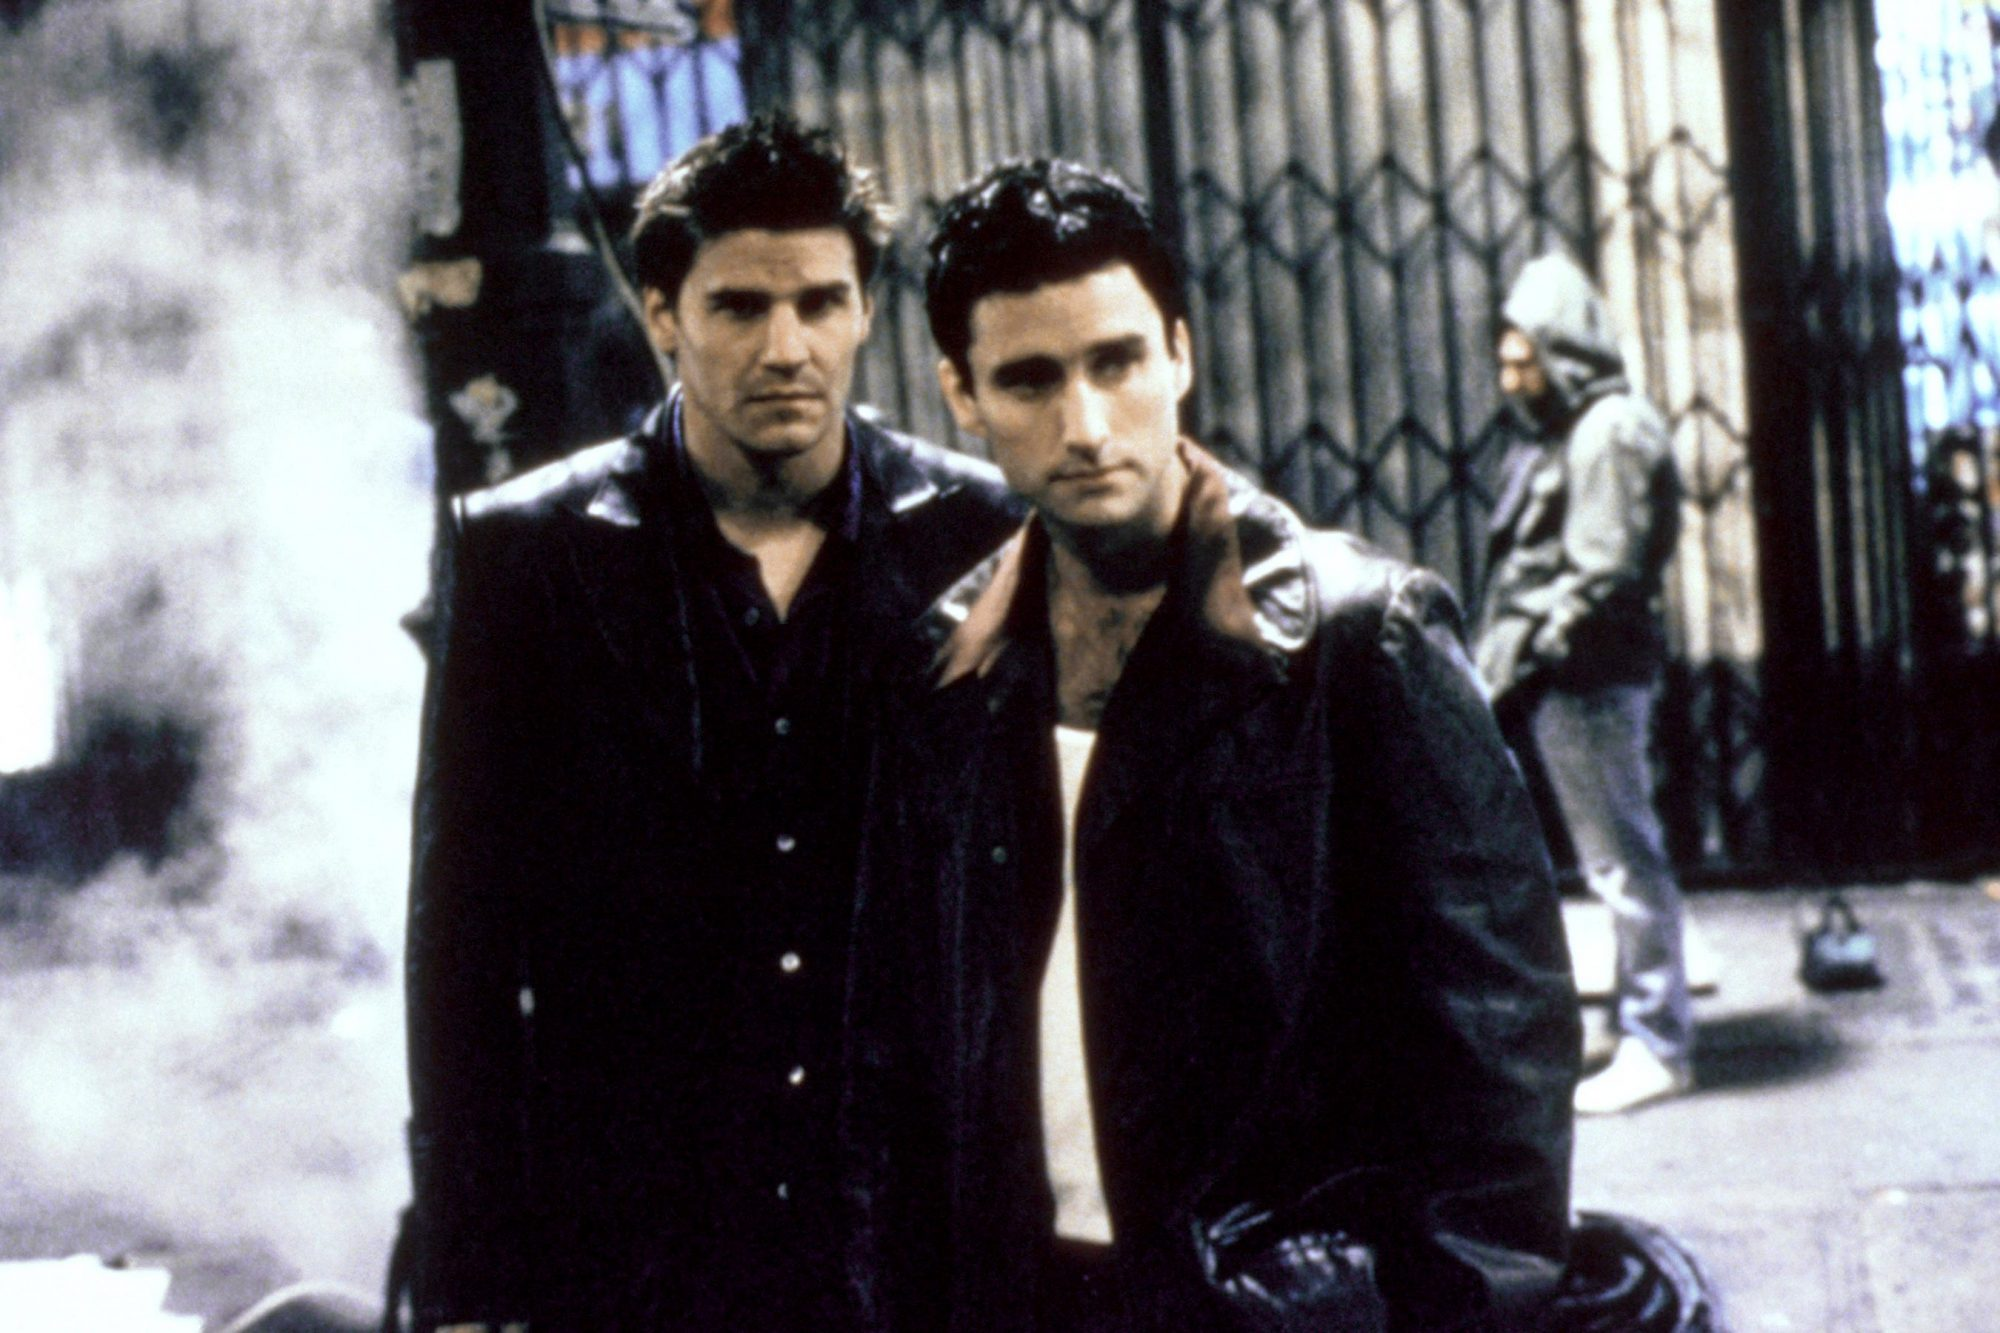 ANGEL, (from left): David Boreanaz, Glenn Quinn, 'City of...', (Season 1, aired Oct. 5, 1999), 1999-